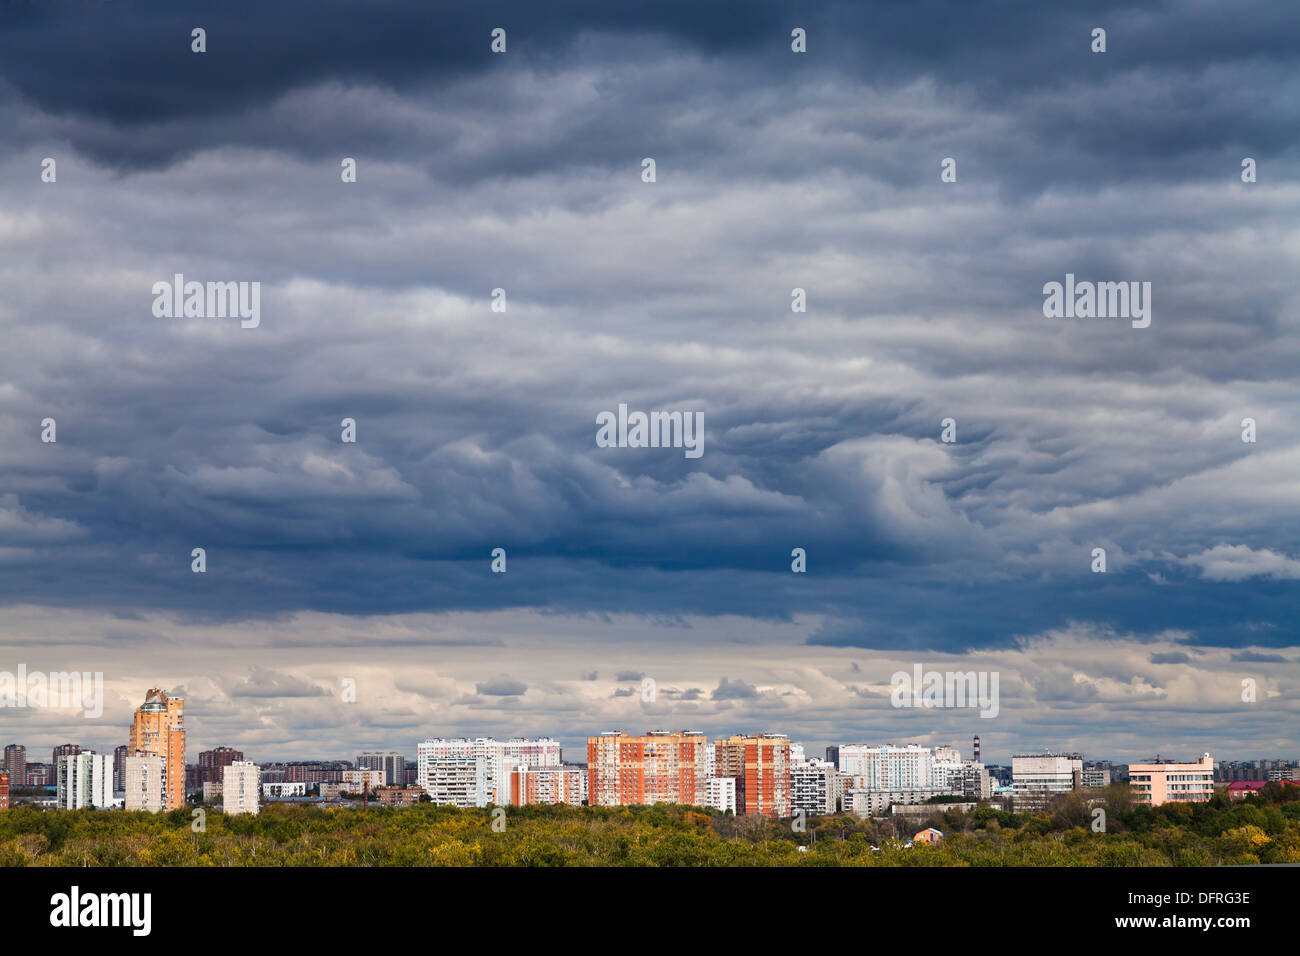 skyline with dark blue storm clouds over city in autumn - Stock Image